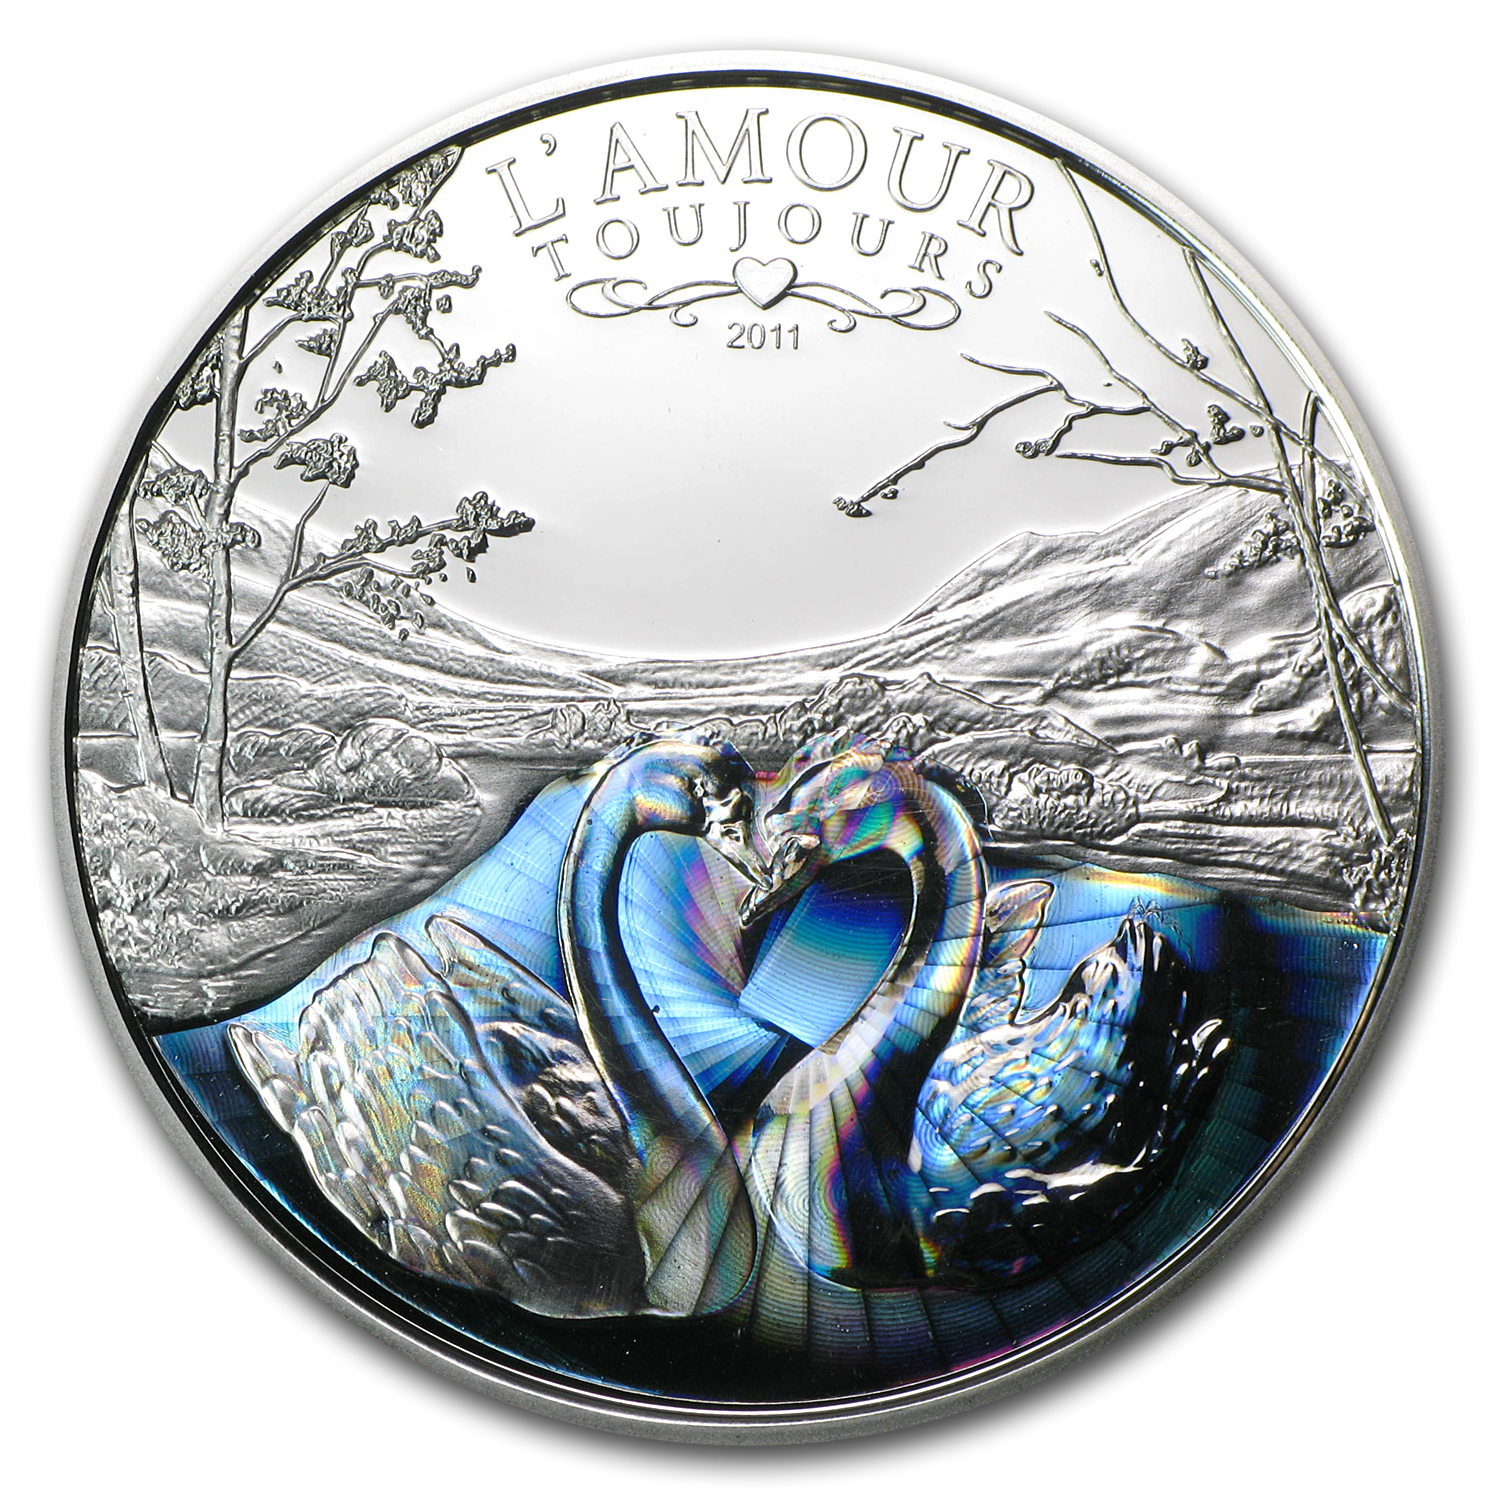 2011 Cameroon Proof Silver 1000FR CFA Francs L'Amour Toujours